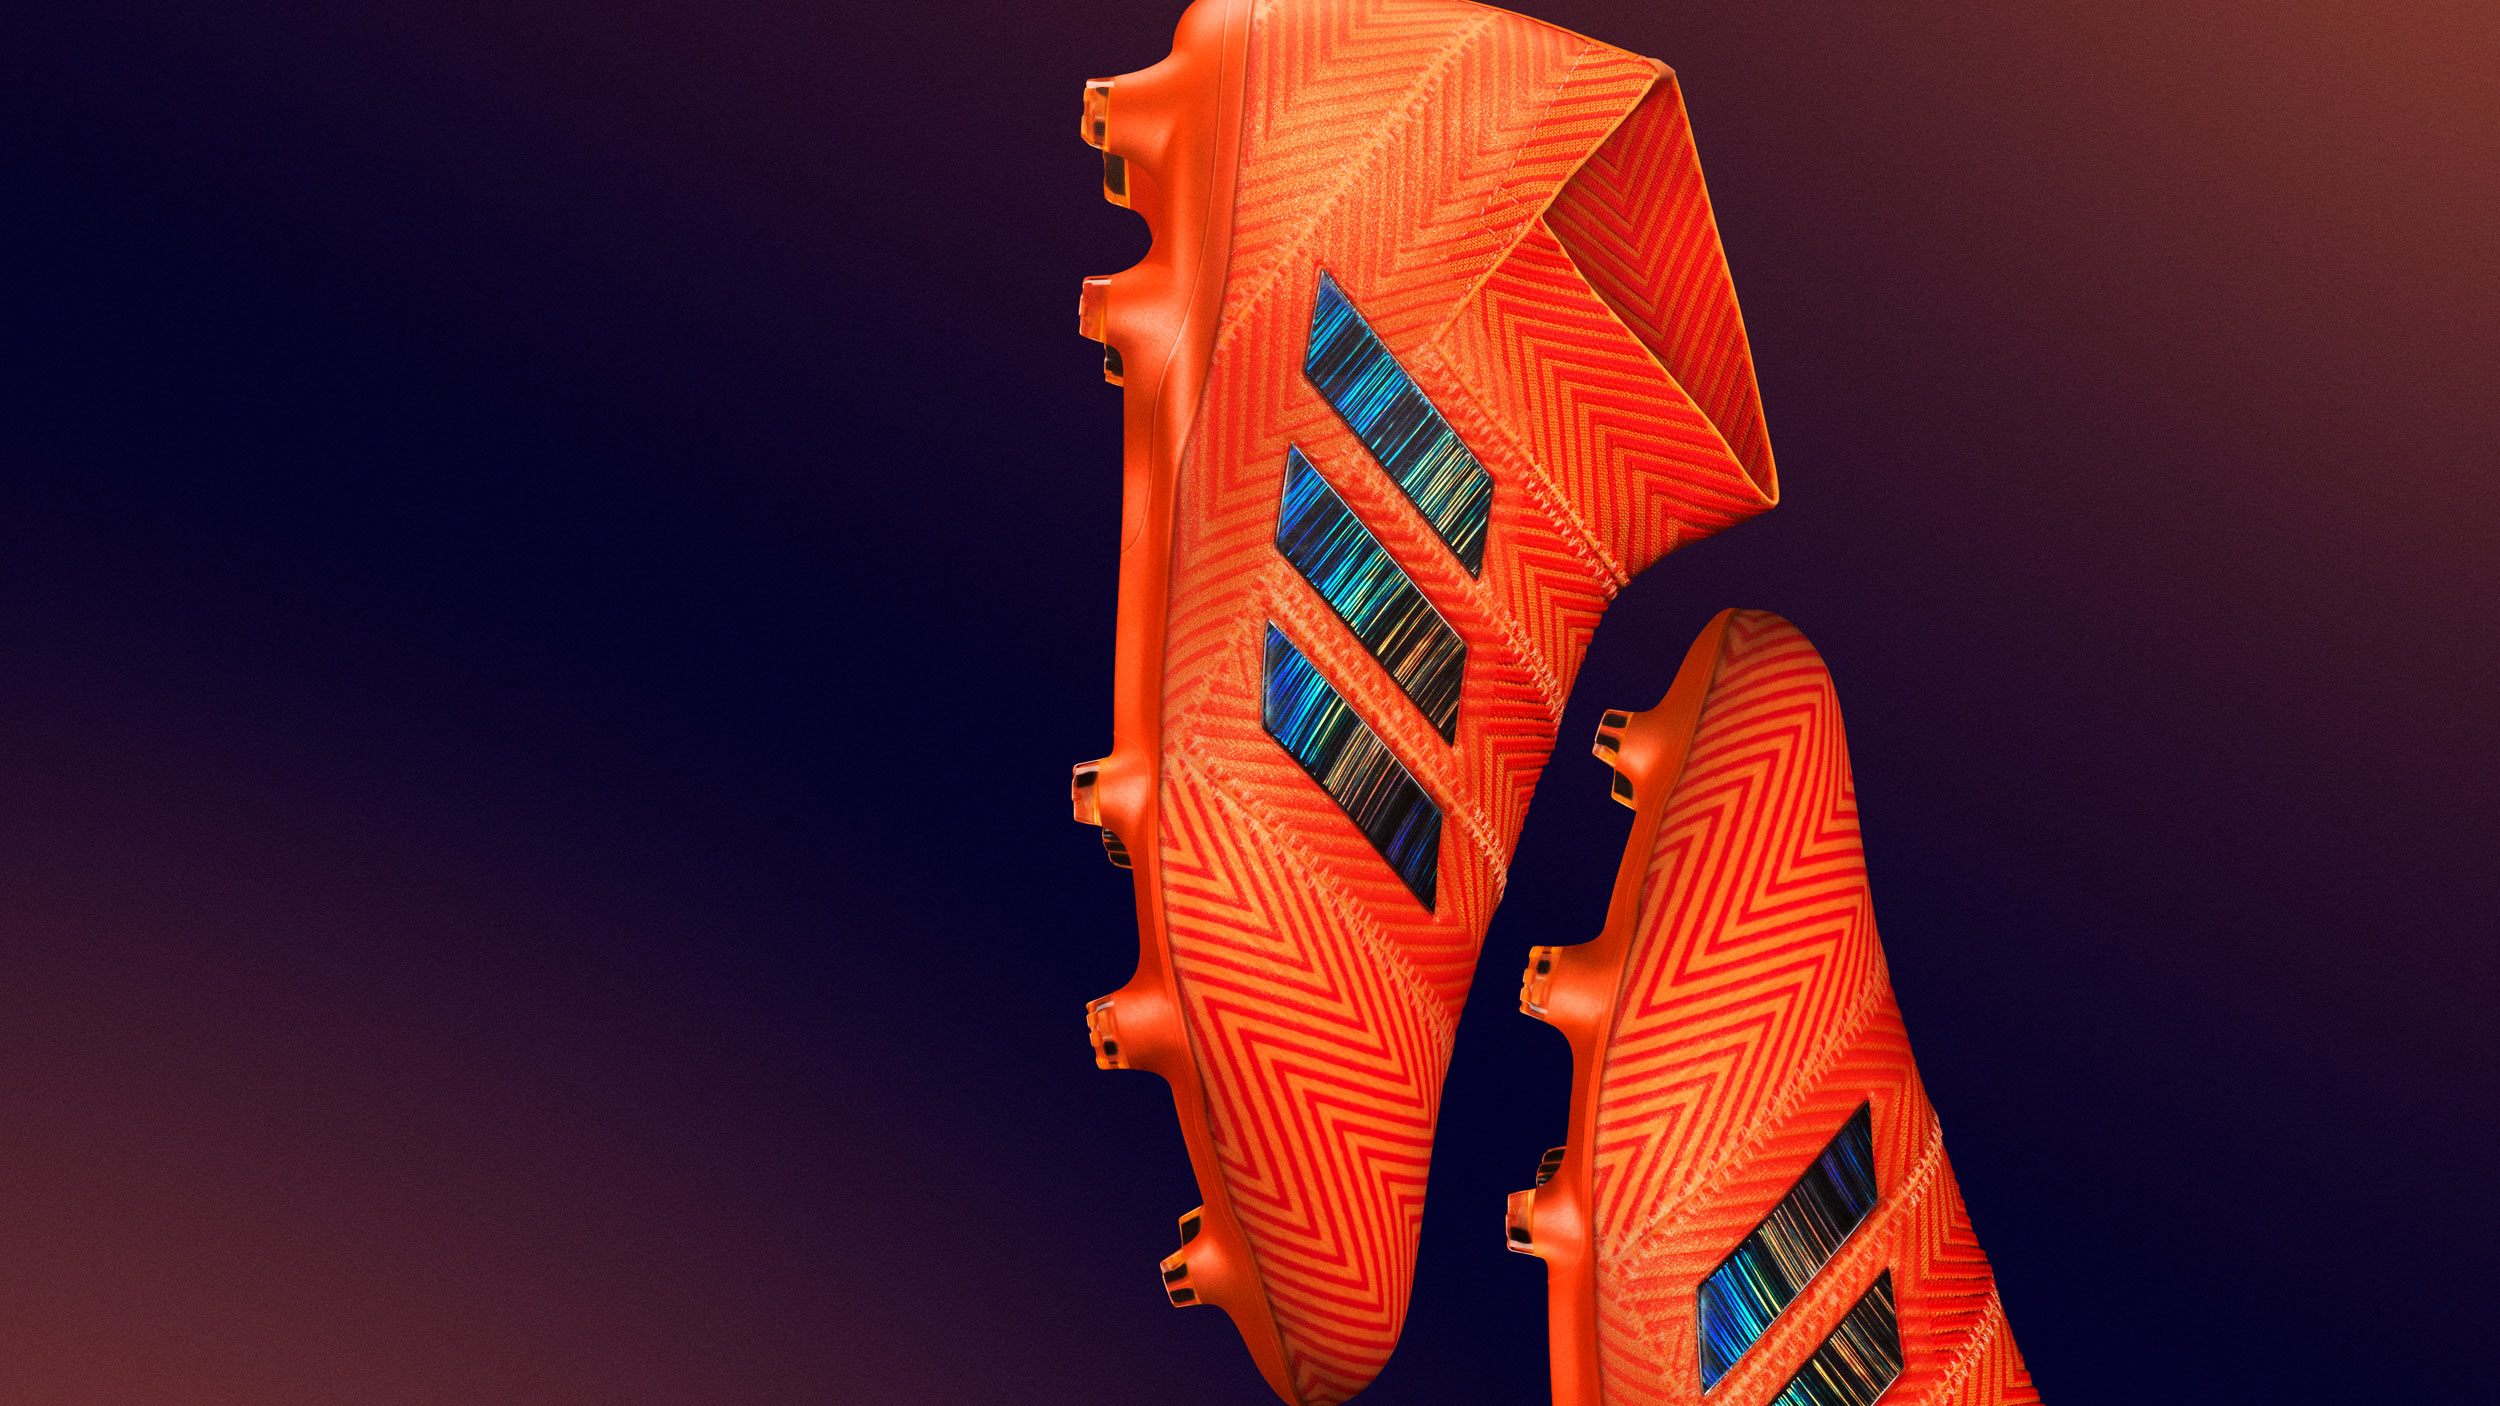 Adidas-Cleat_Comp_03_LandingPage